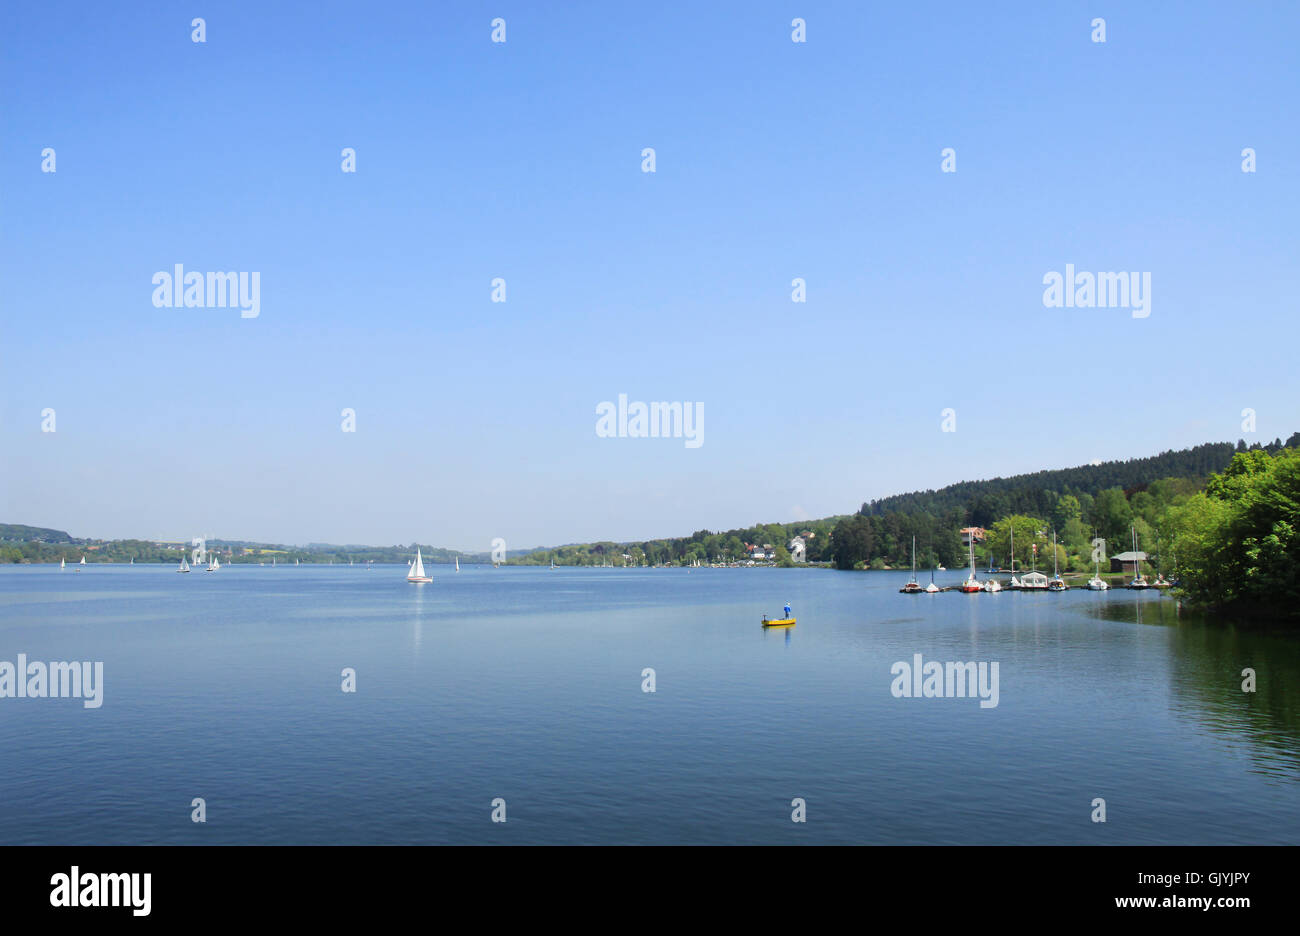 artificial lake fresh water lake - Stock Image